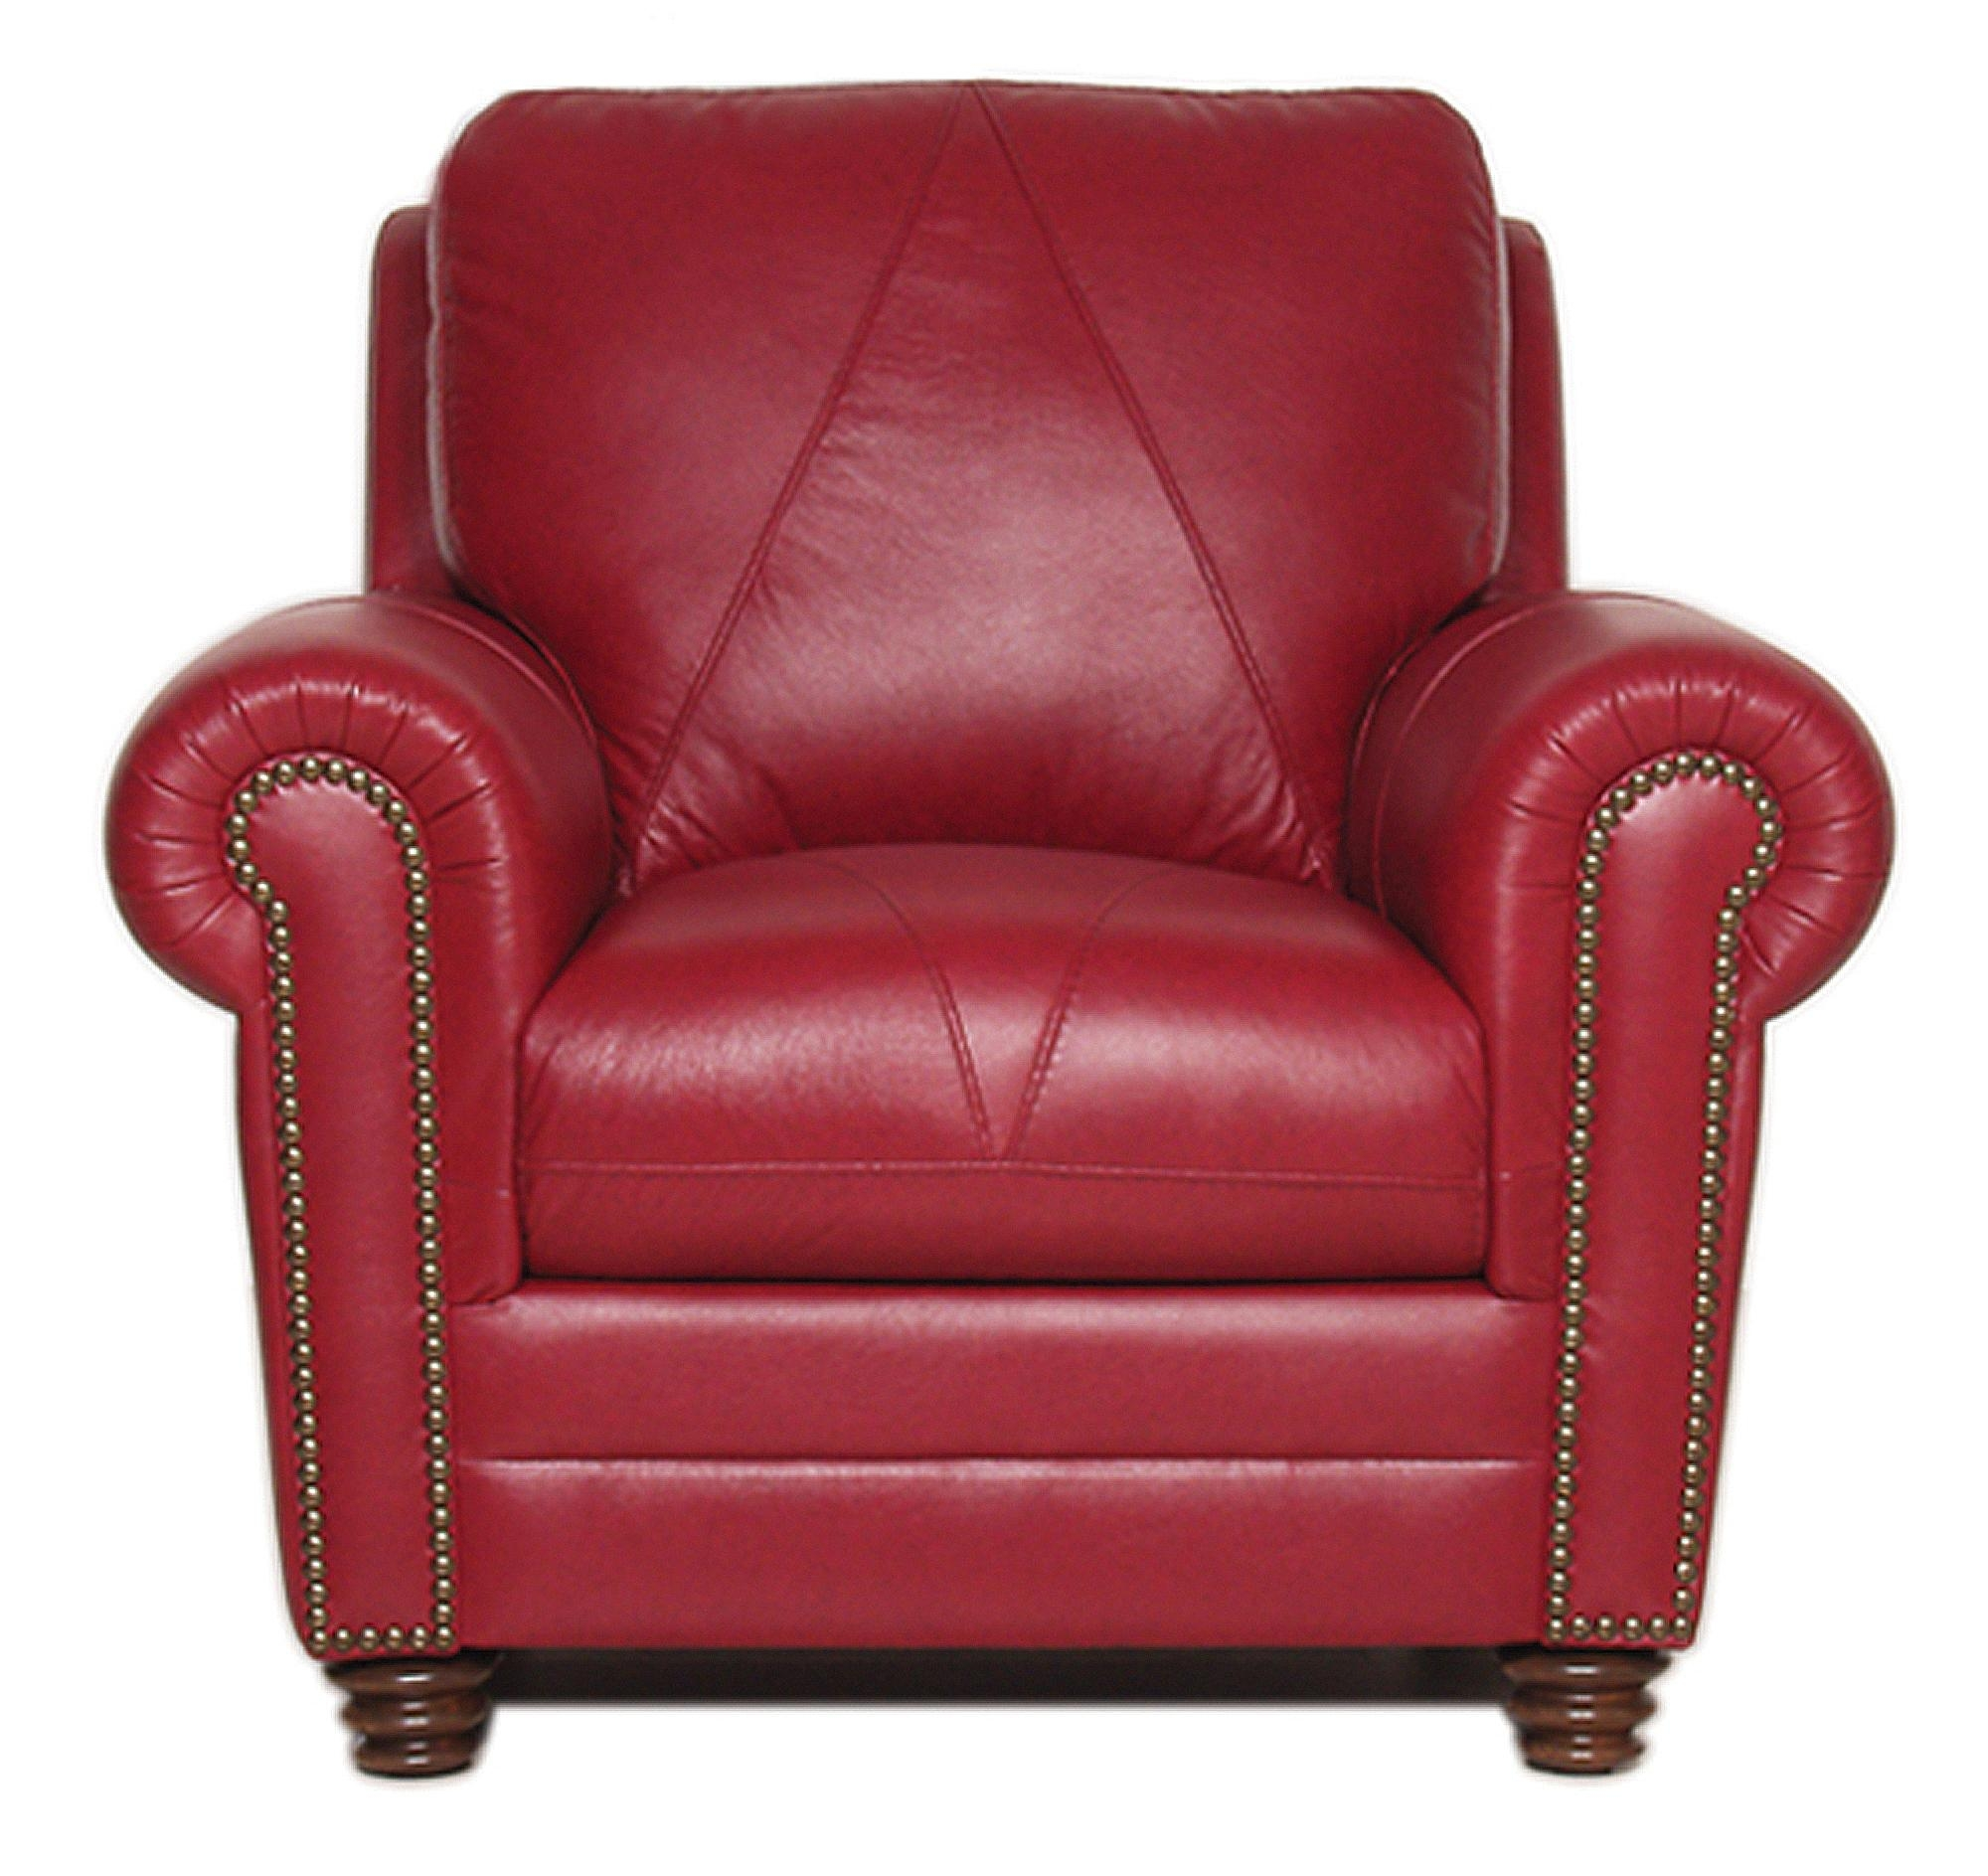 Weston Collection – Luke Leather Furniture In Red Sofas And Chairs (Image 20 of 20)